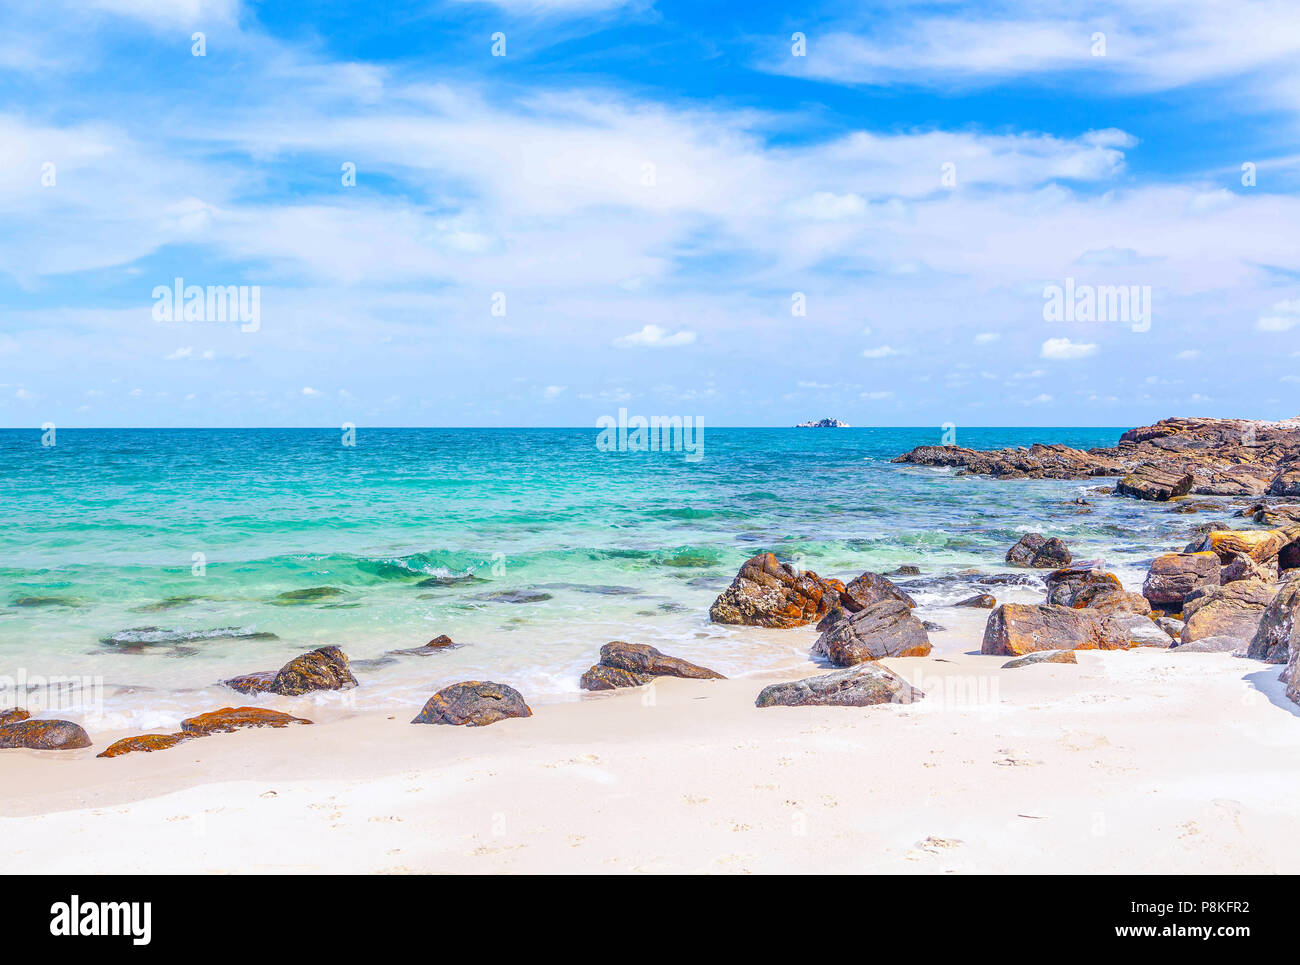 A beautiful sandy beach on the island of Samed in Thailand. - Stock Image